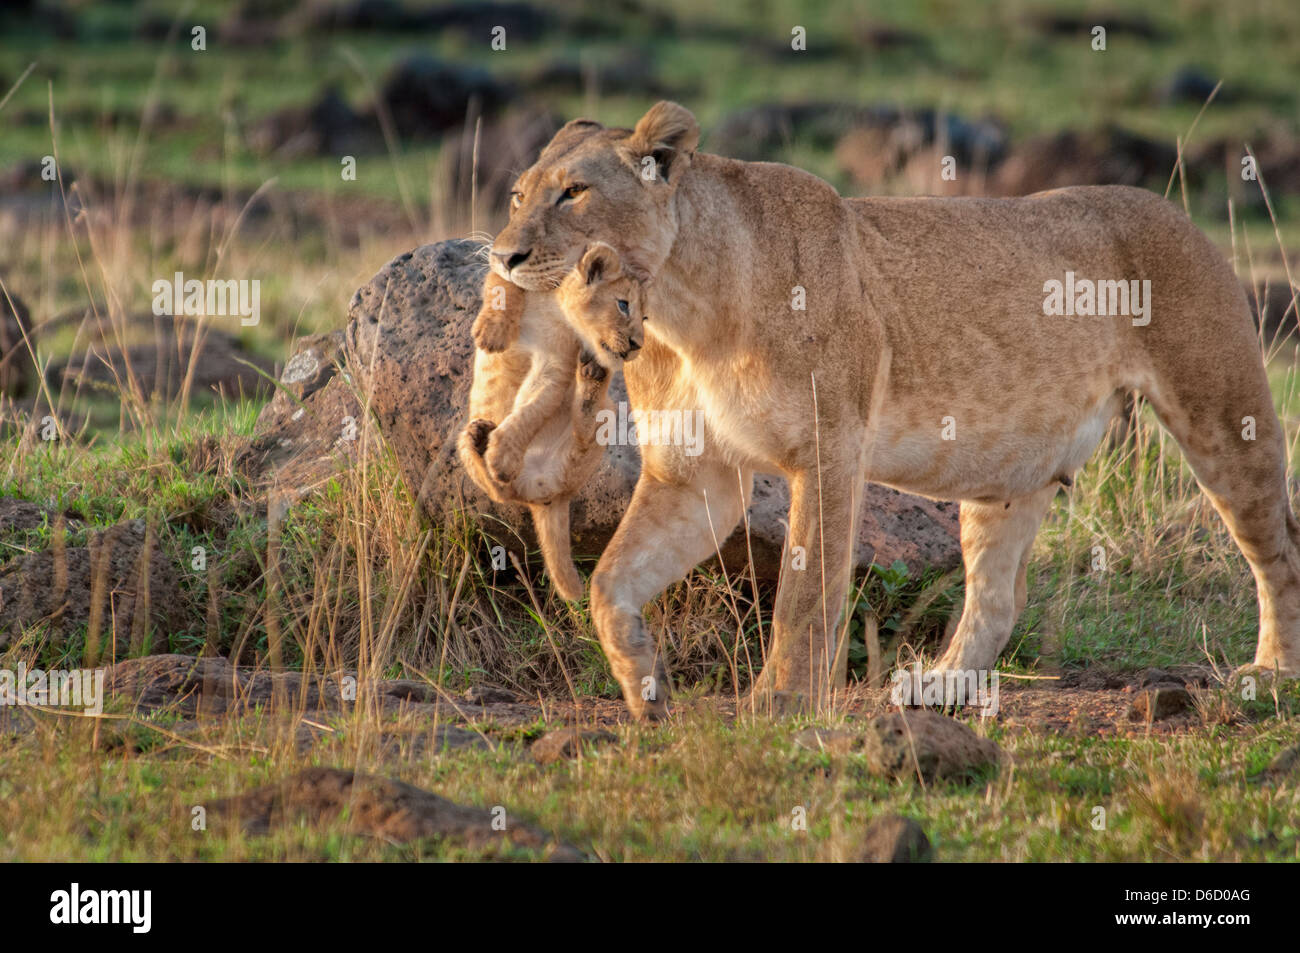 Lioness, Panthera Leo, carrying a cub in her mouth, Masai Mara National Reserve, Kenya, Africa - Stock Image